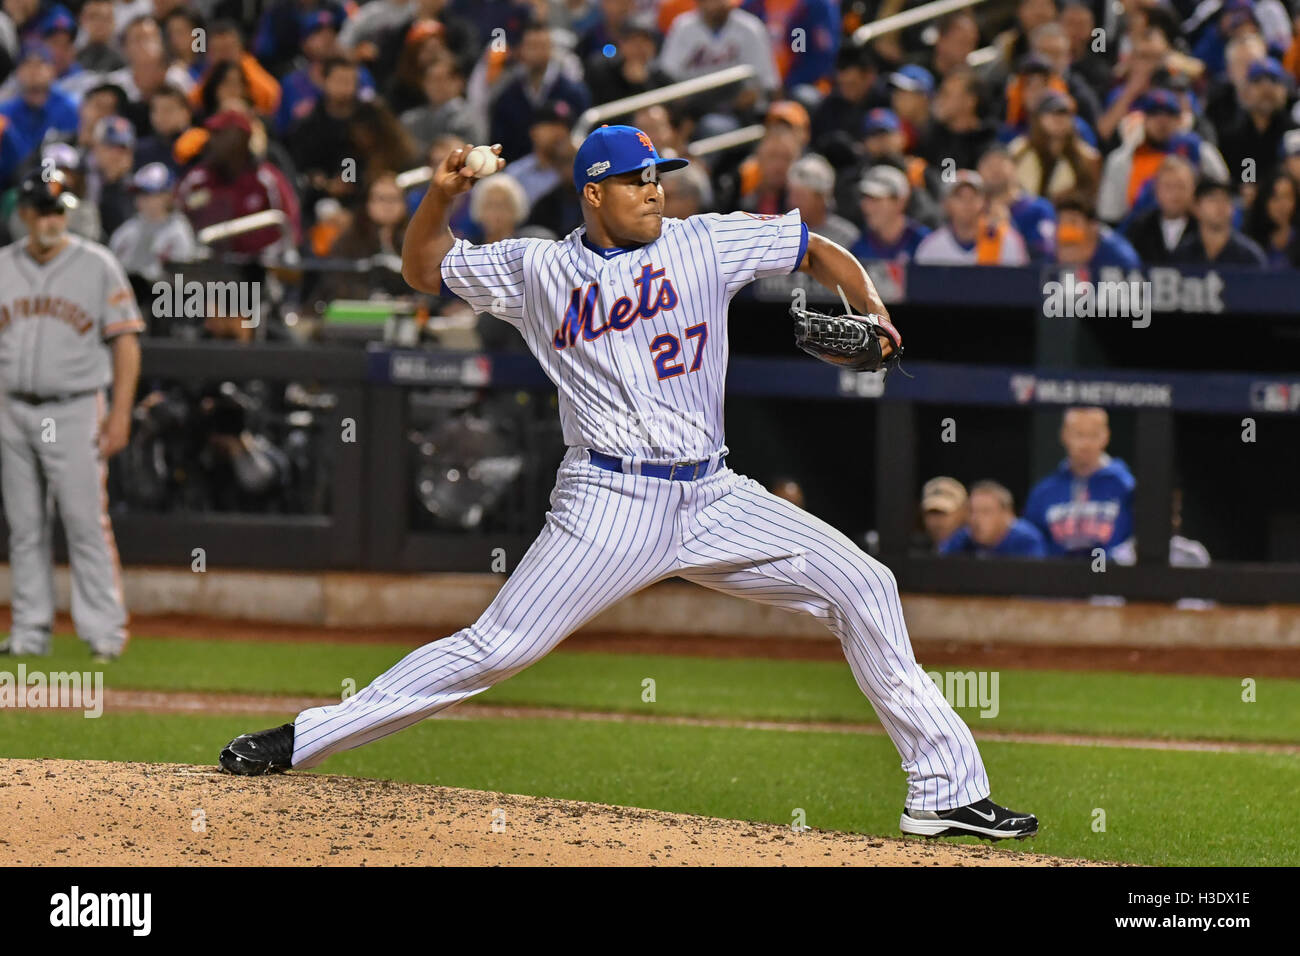 Flushing, New York, USA. 5ème Oct, 2016. Jeurys Familia (Mets) MLB : Jeurys Familia les Mets de New York Photo Stock